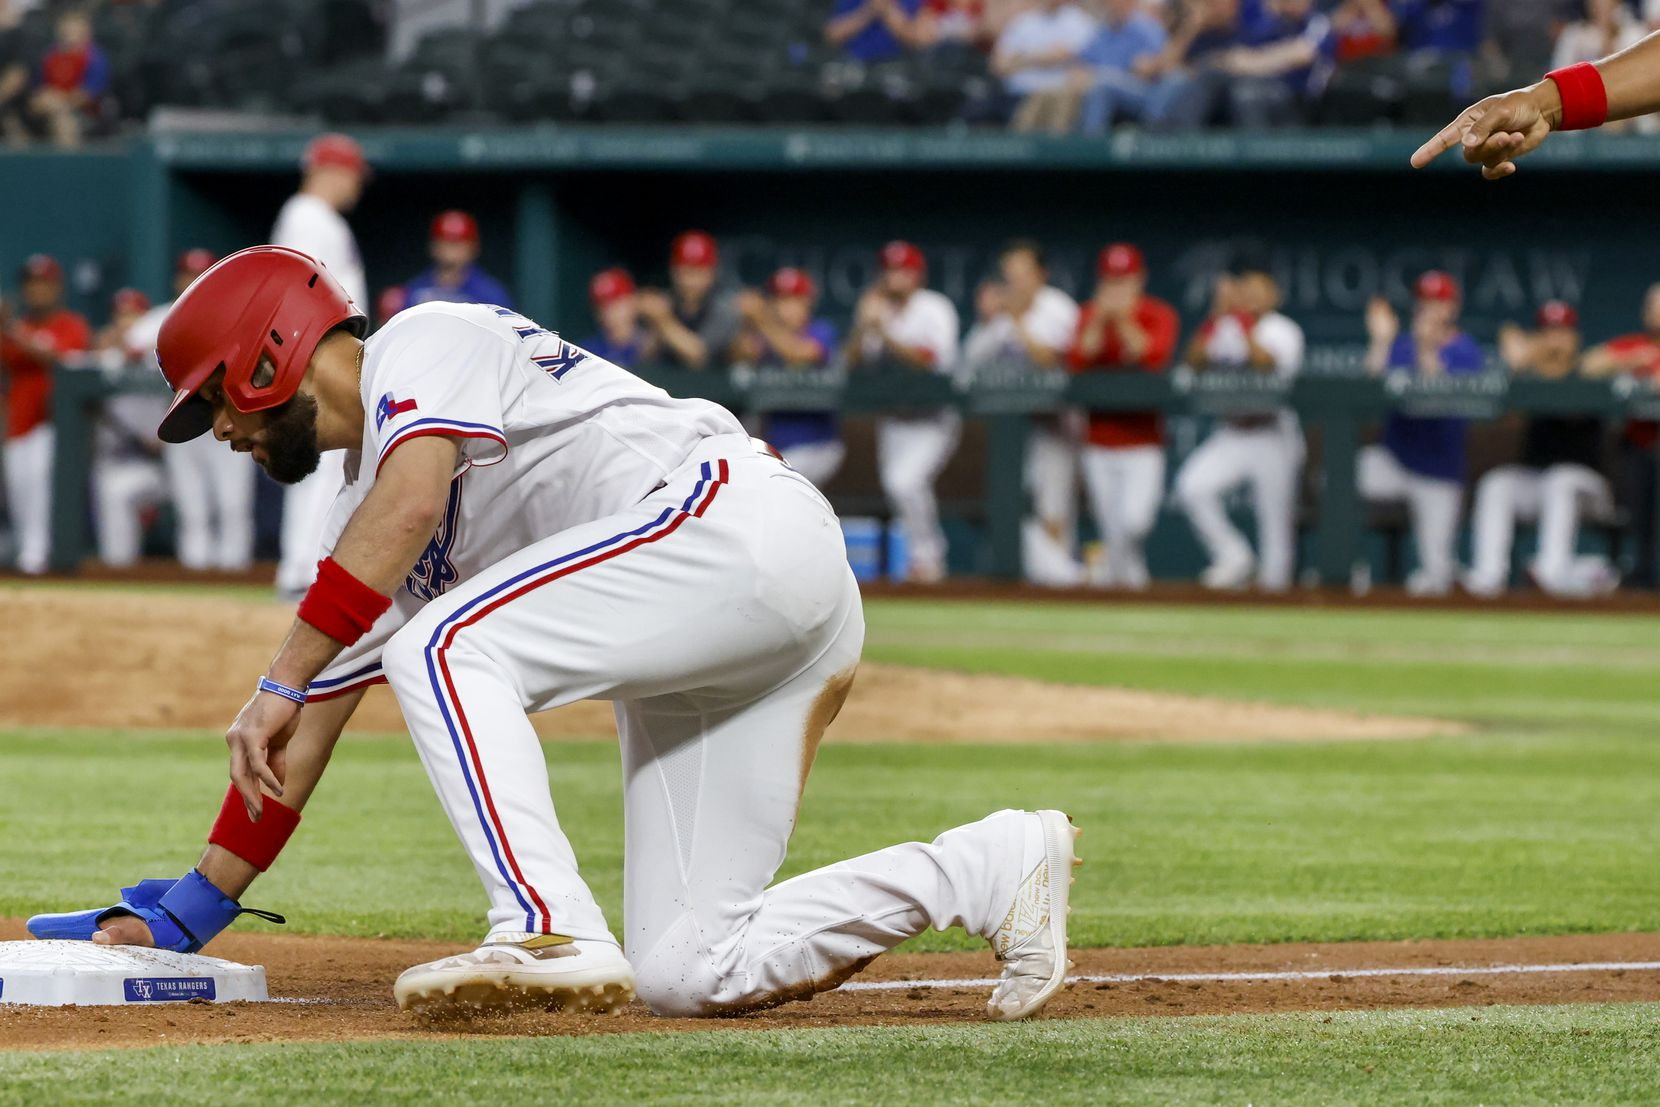 The Rangers' Isiah Kiner-Falefa arrives on third base at Globe Life Field after Brock Hold lined out to center against the San Francisco Giants on June 9.